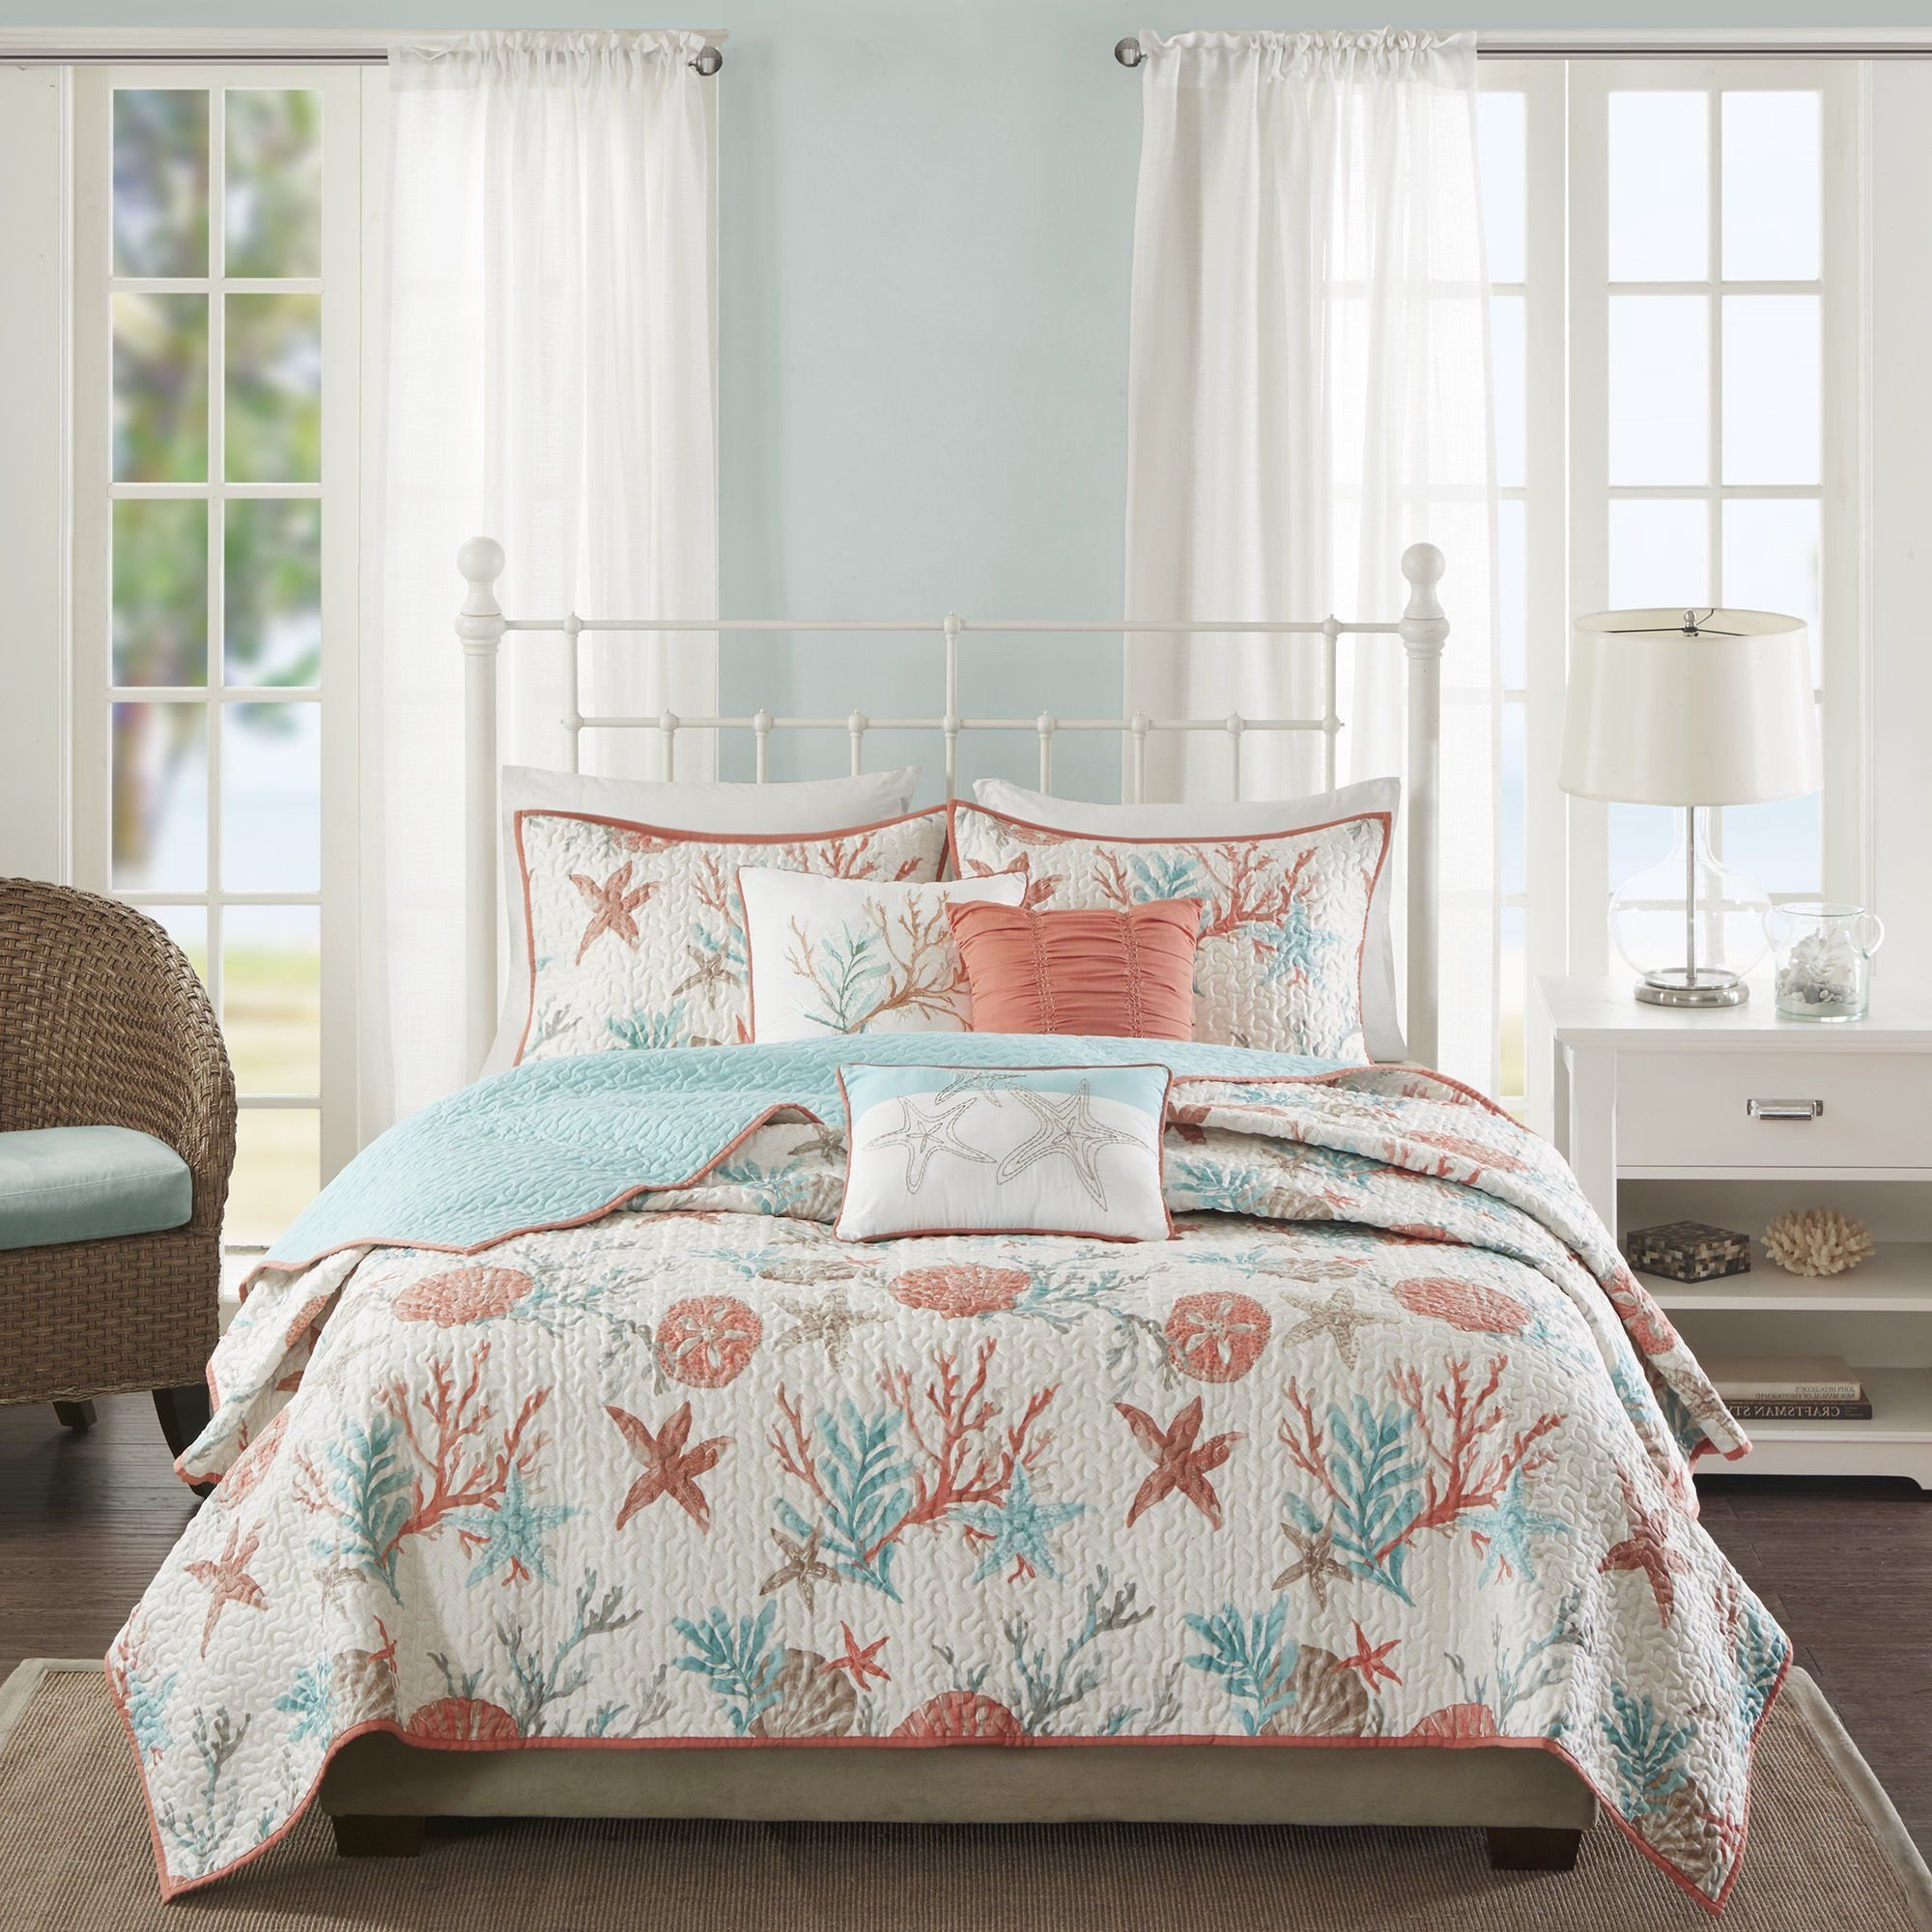 Coral and Teal Bedroom Best Of 6 Piece Vibrant orange Pink Blue White Full Queen Quilt Set